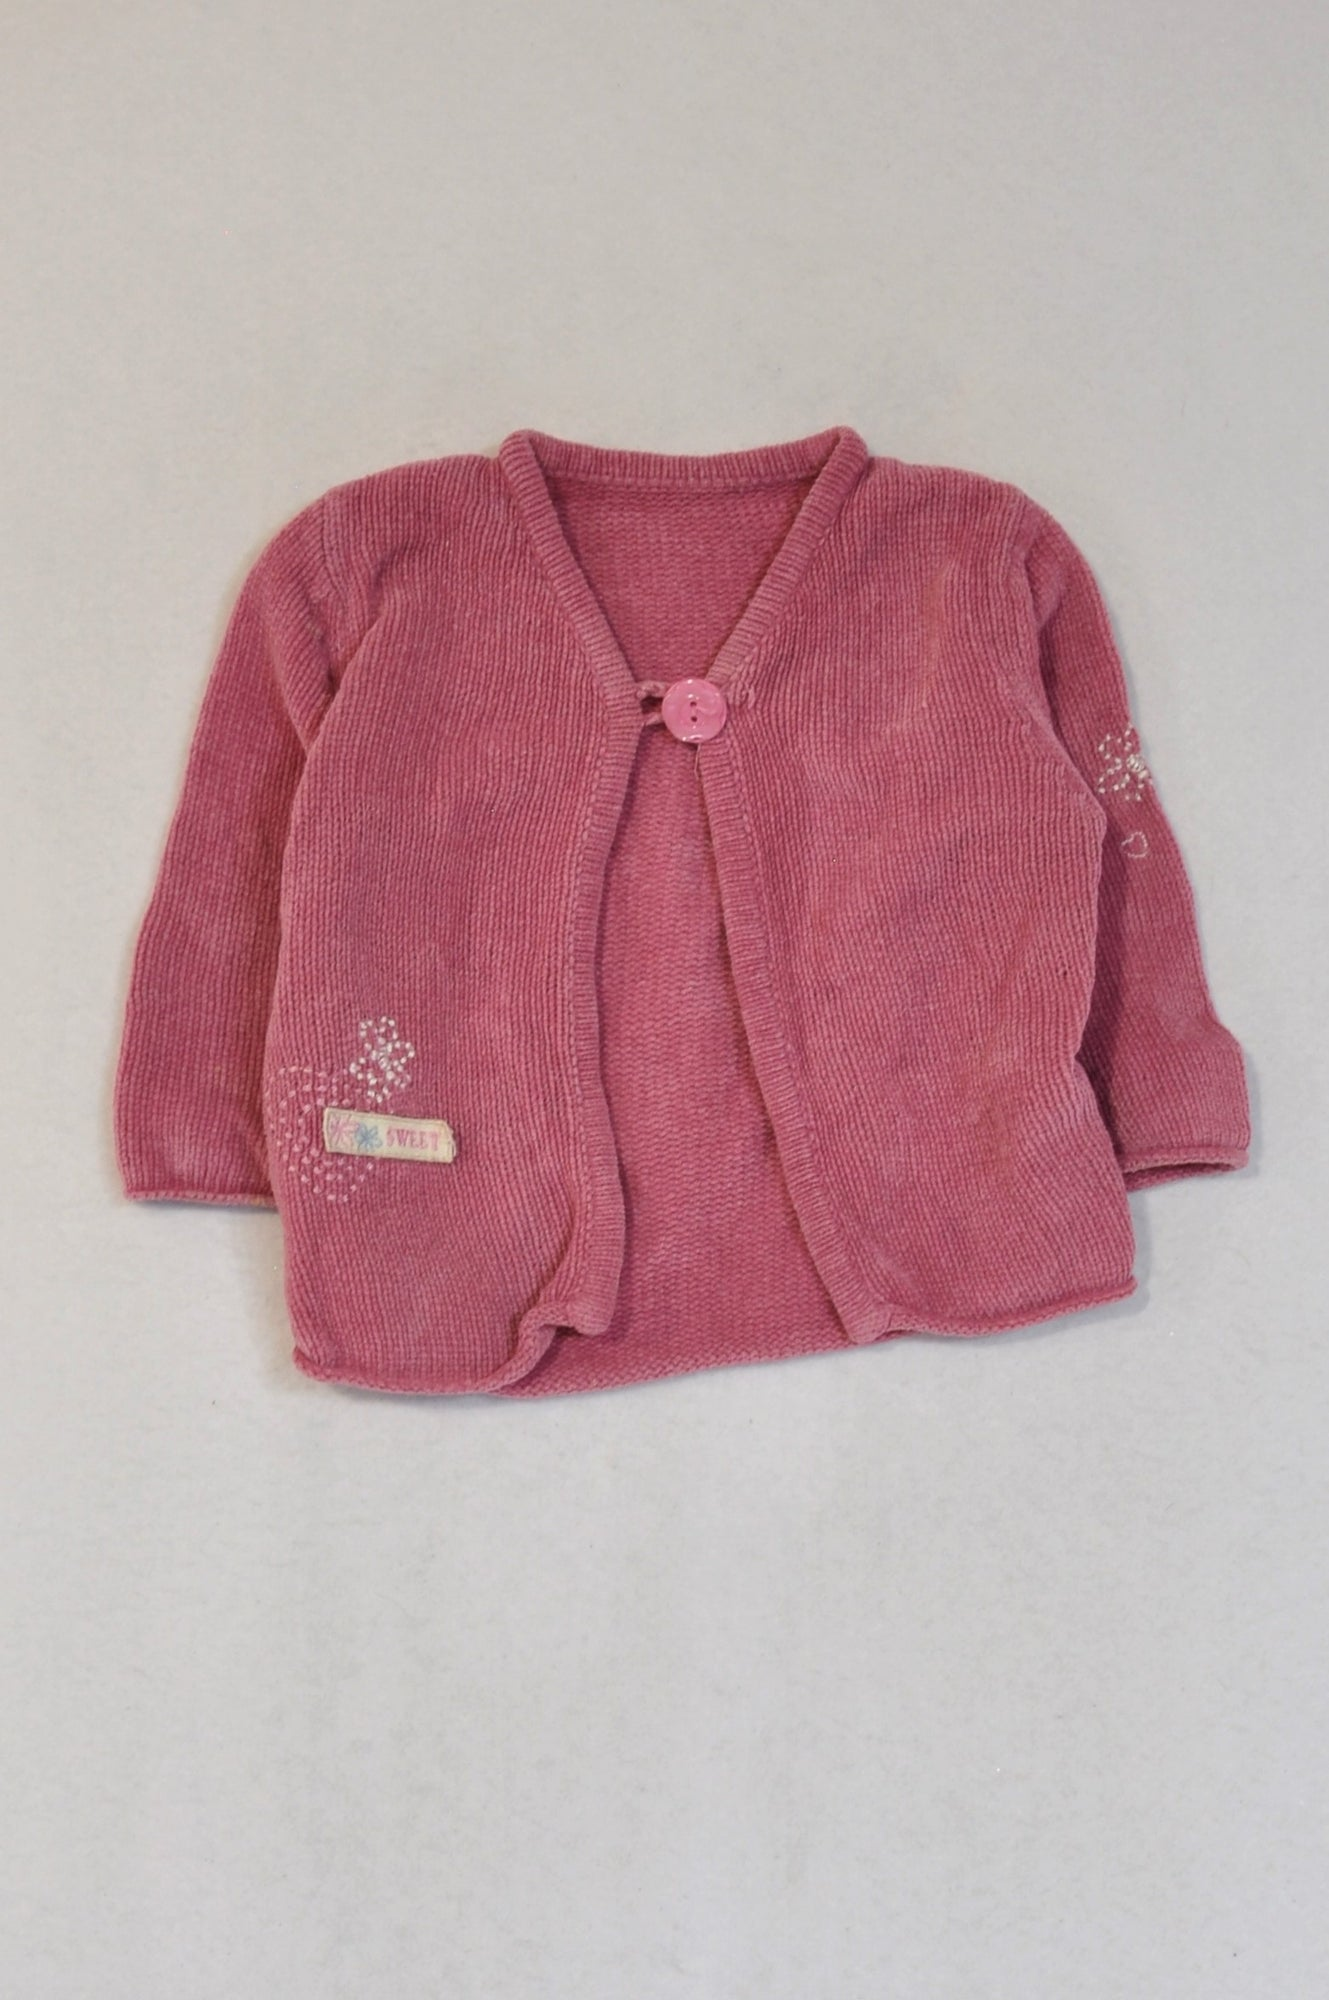 Unbranded Dusty Pink Crochet Cardigan Girls 6-9 months